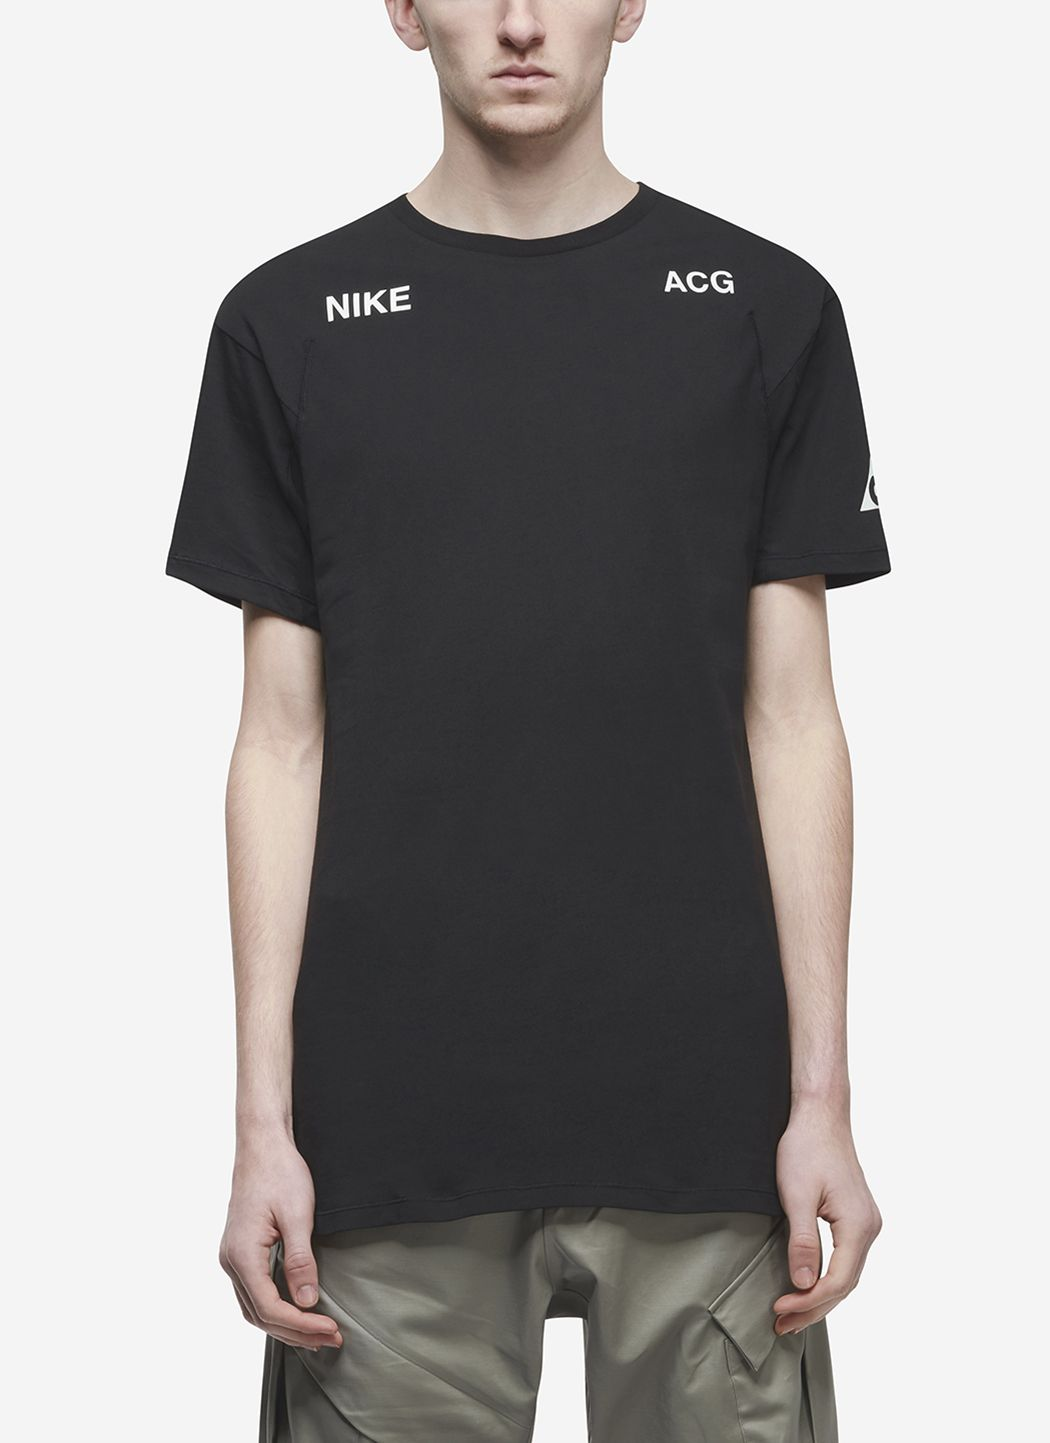 Nikelab ACG T-Shirt in Black / Barely Green 01